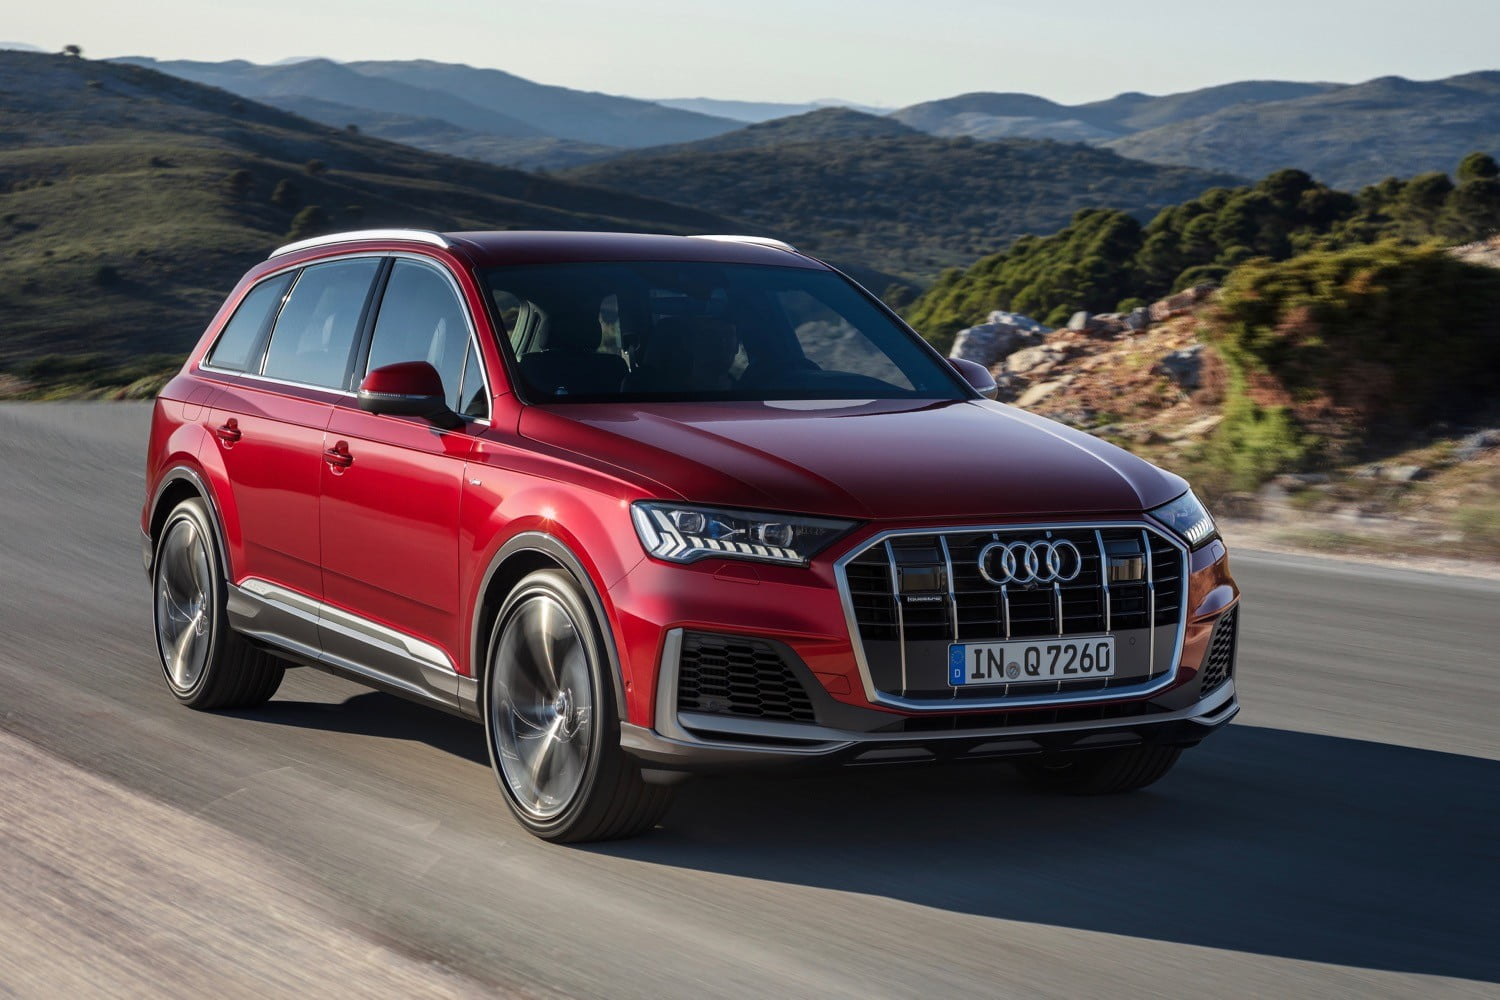 2019 Audi Q7 Changes, Specs And Price >> 2020 Audi Q7 Three Row Suv Gets Updated Styling Tech Digital Trends